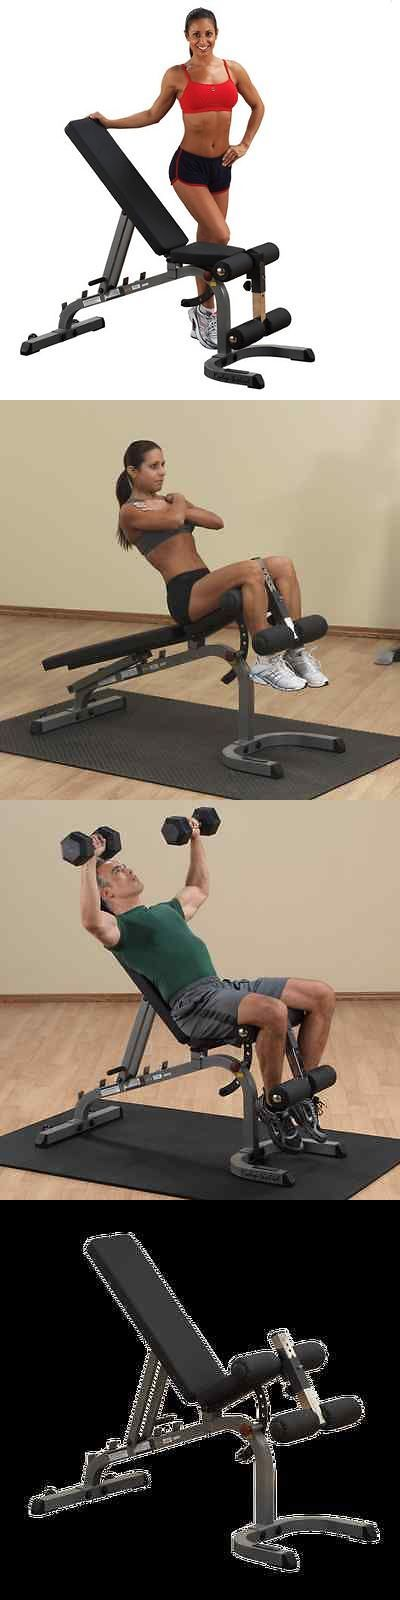 Benches 15281: Body-Solid Adjustable Flat Incline Decline Bench Gfid31 - Fitness Equipment -> BUY IT NOW ONLY: $310 on eBay!